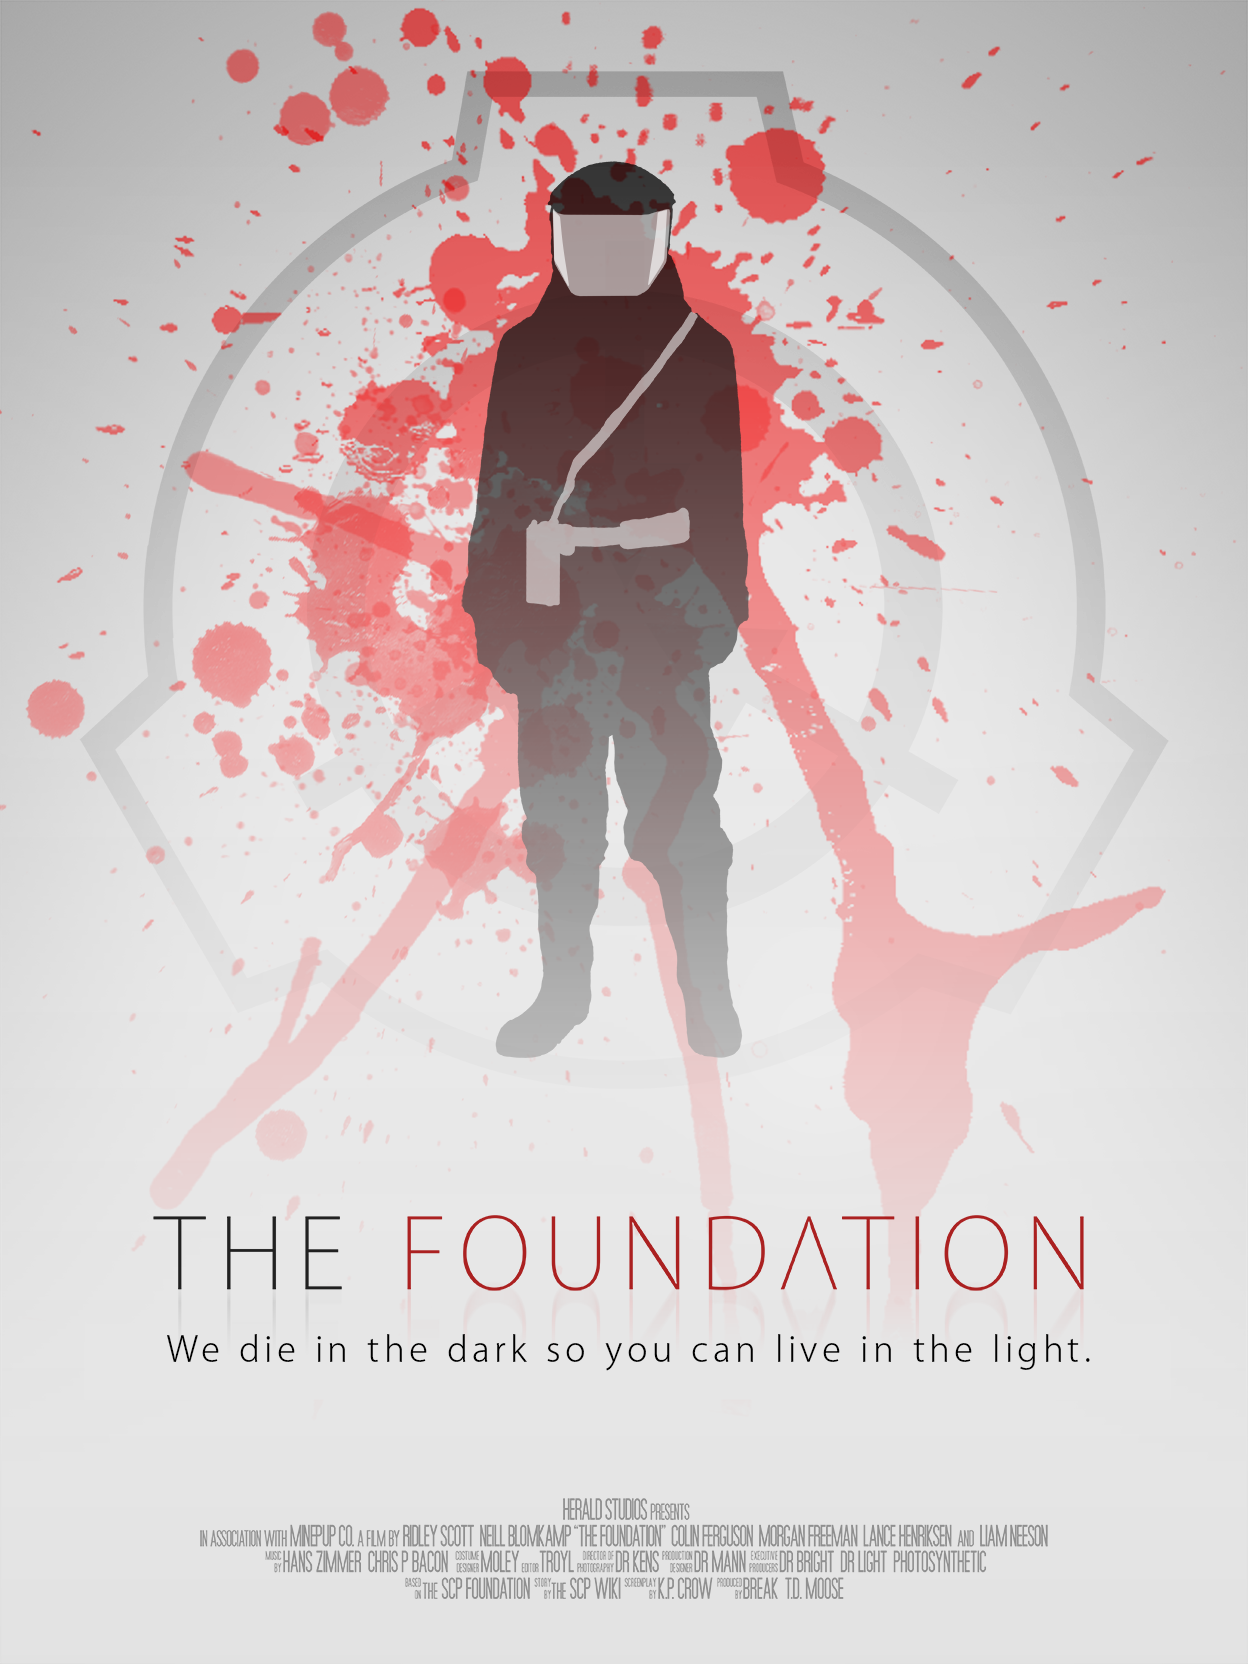 Scp Movie Poster 2 I So Wish They Actually Made This Either Into A Movie Or A Tv Series Scp Scp Movie Foundation